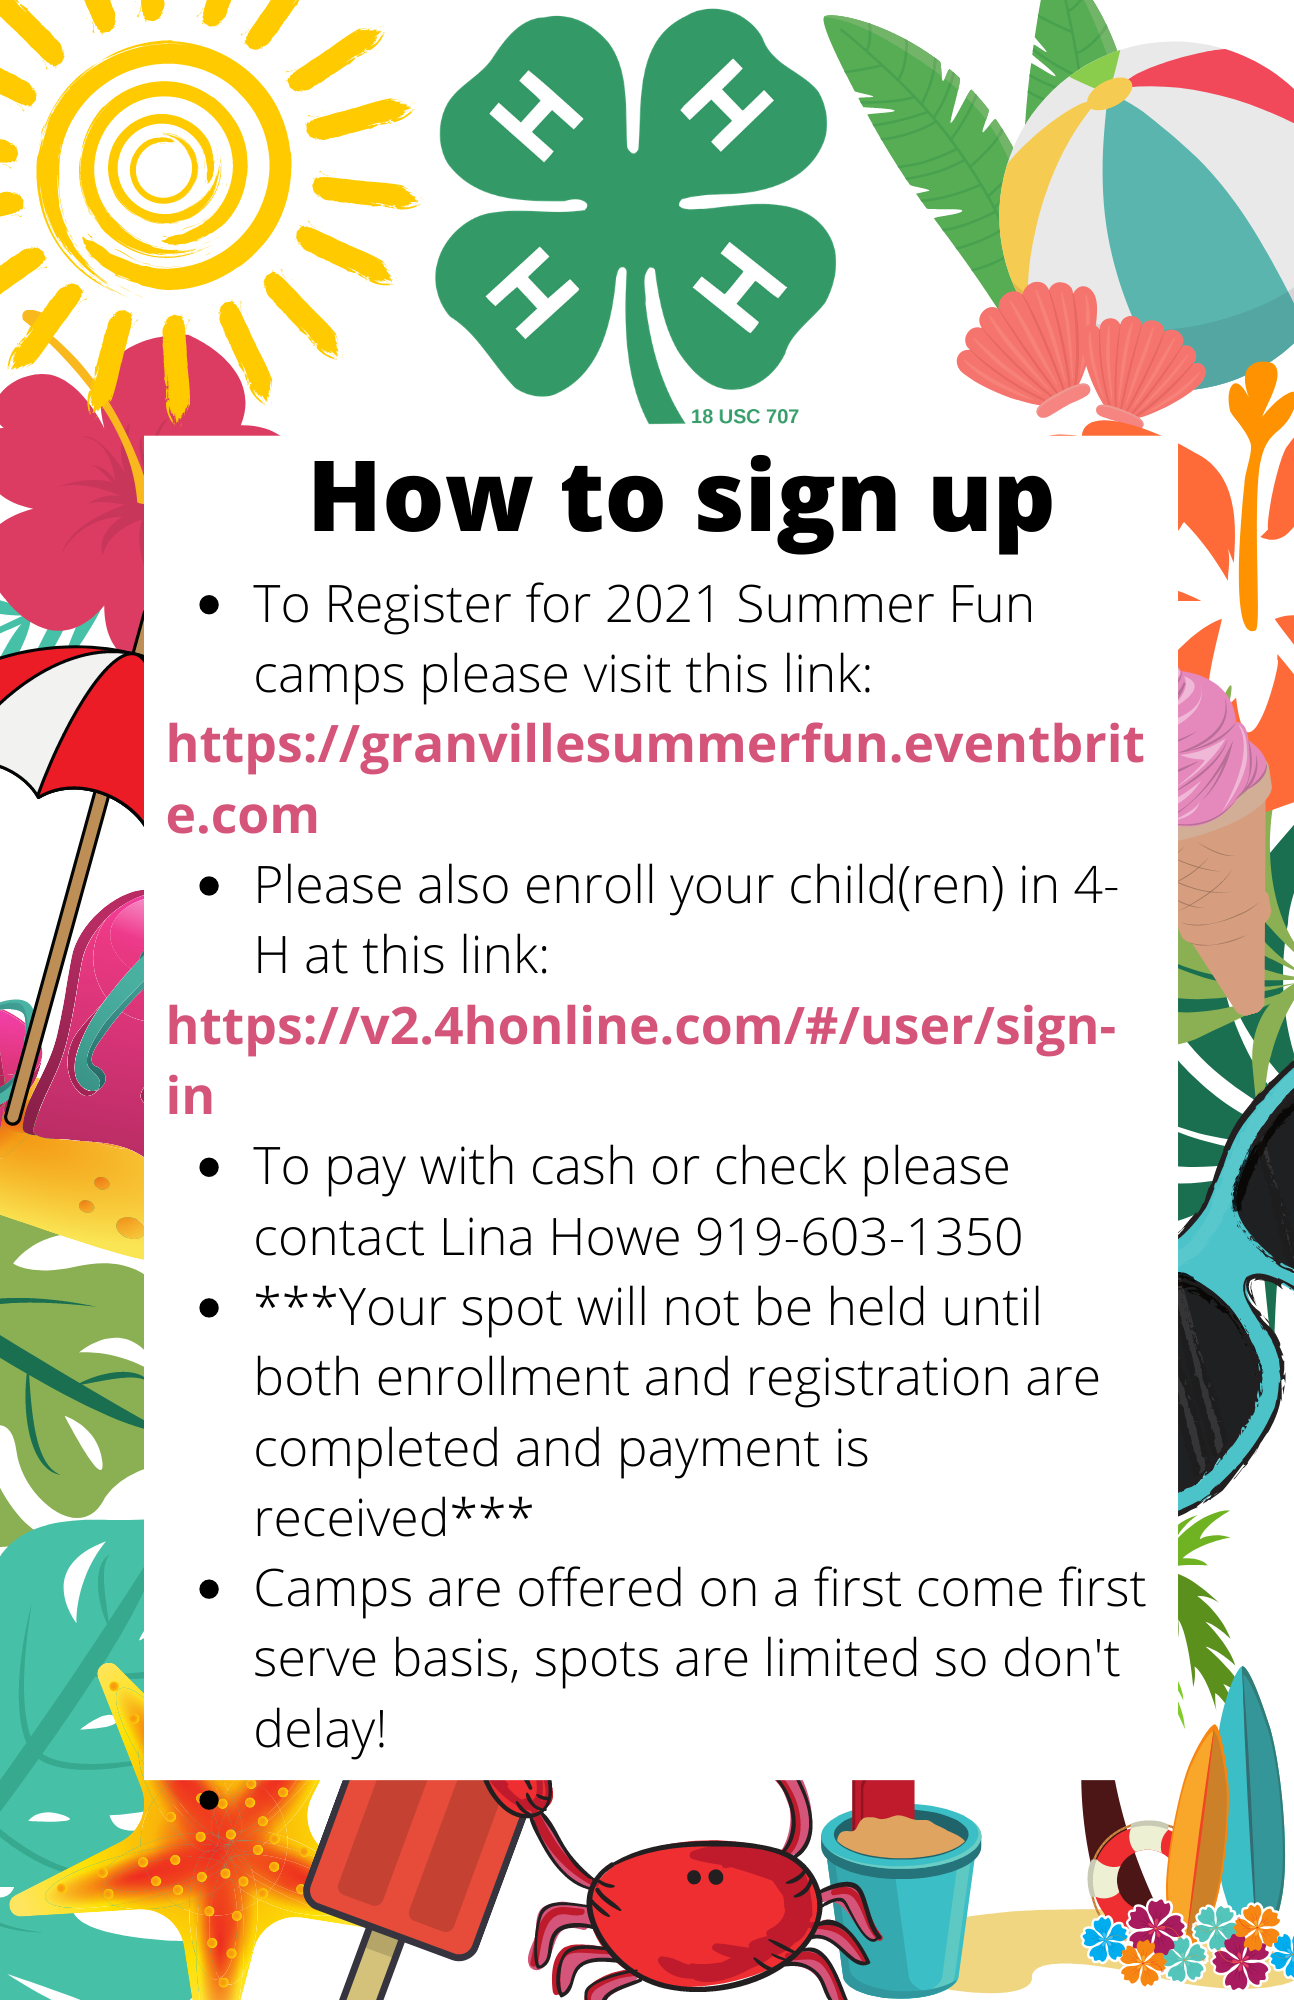 Summer Fun sign up flyer image